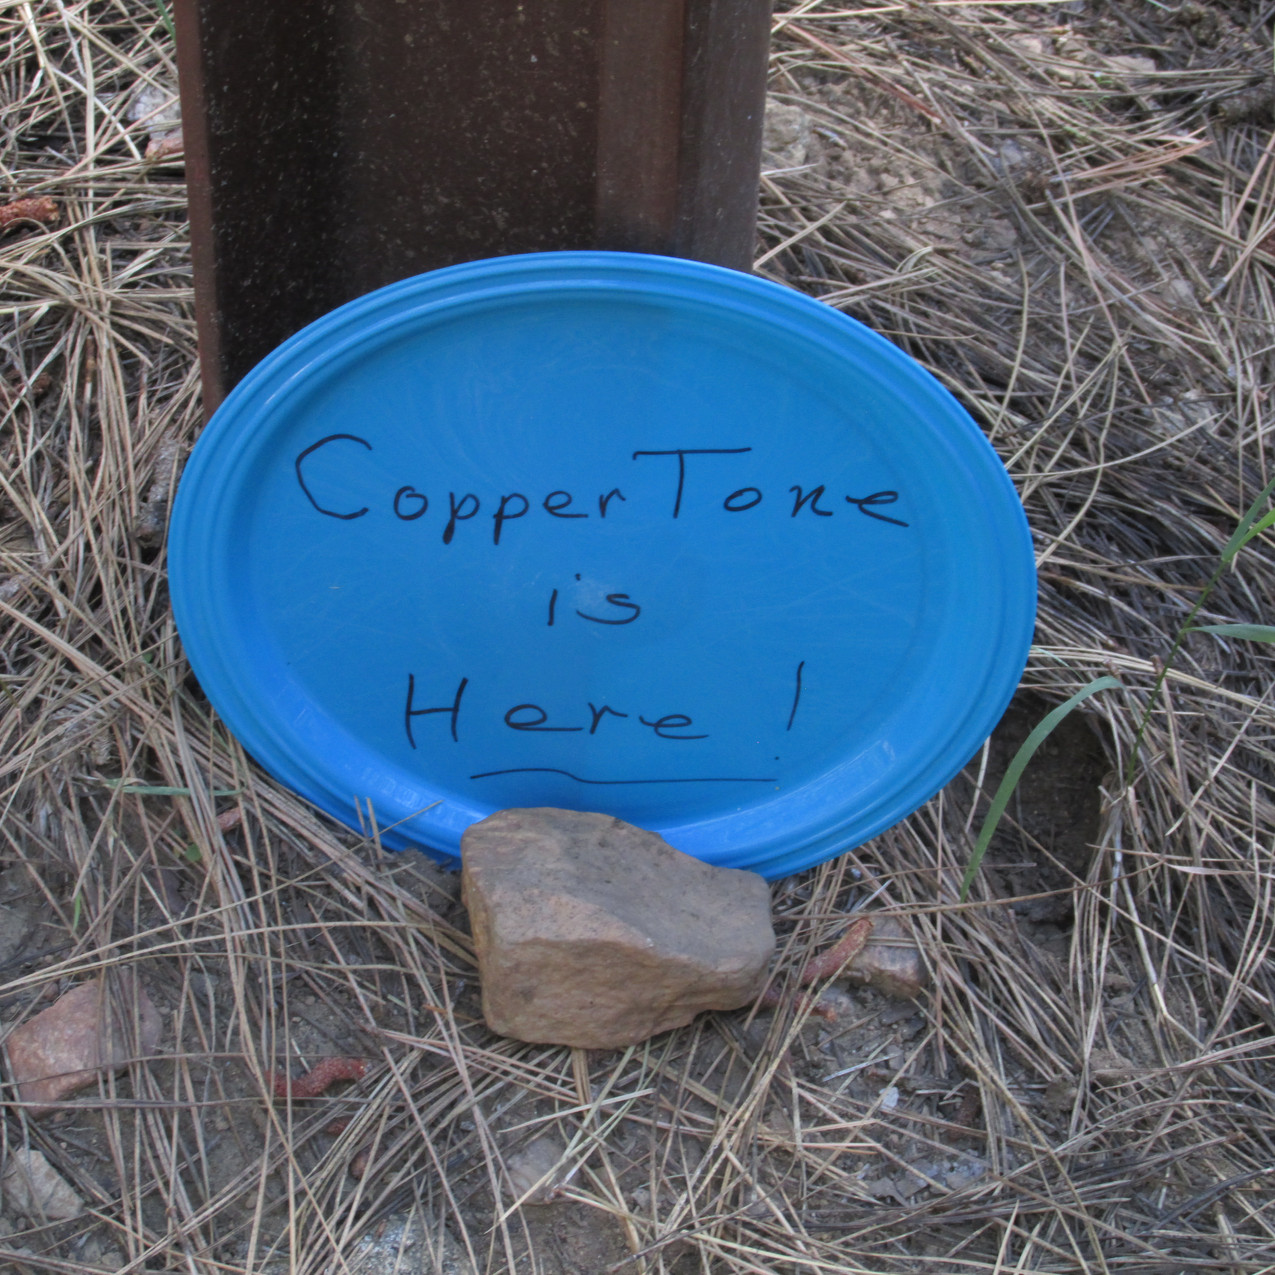 Copper Tone is a trail angel who moved up the PCT with the hikers.  When we saw this sign, we hurried to find Copper Tone because delicious food was available.